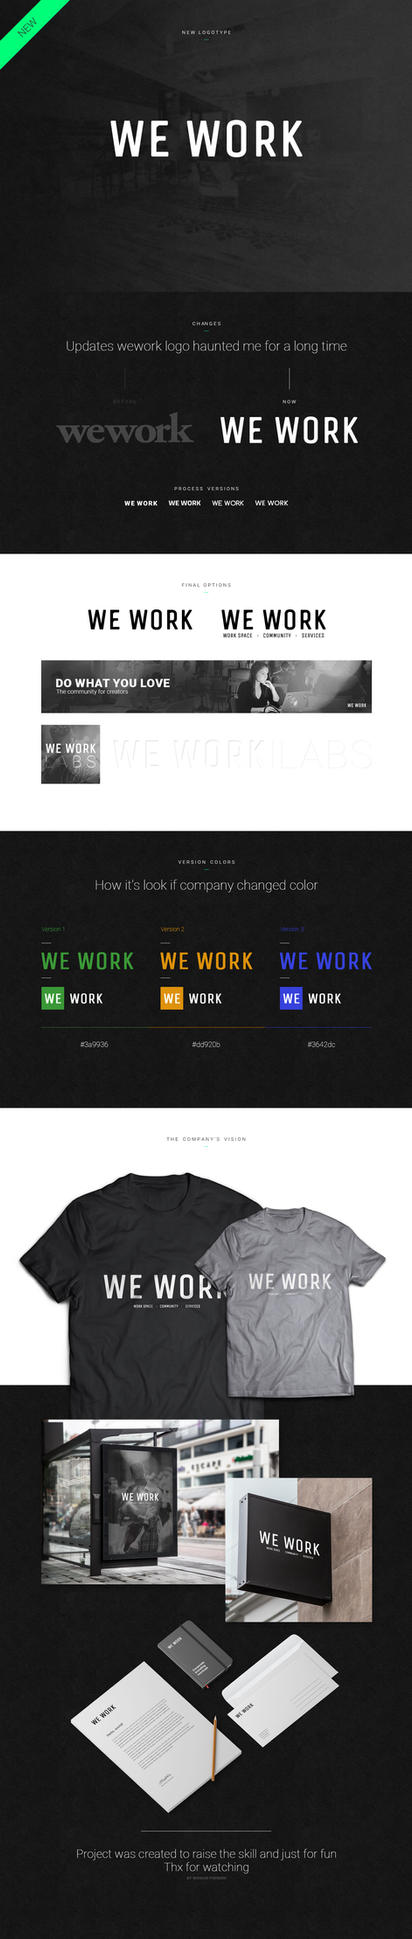 wework company - redesign by Shizoy